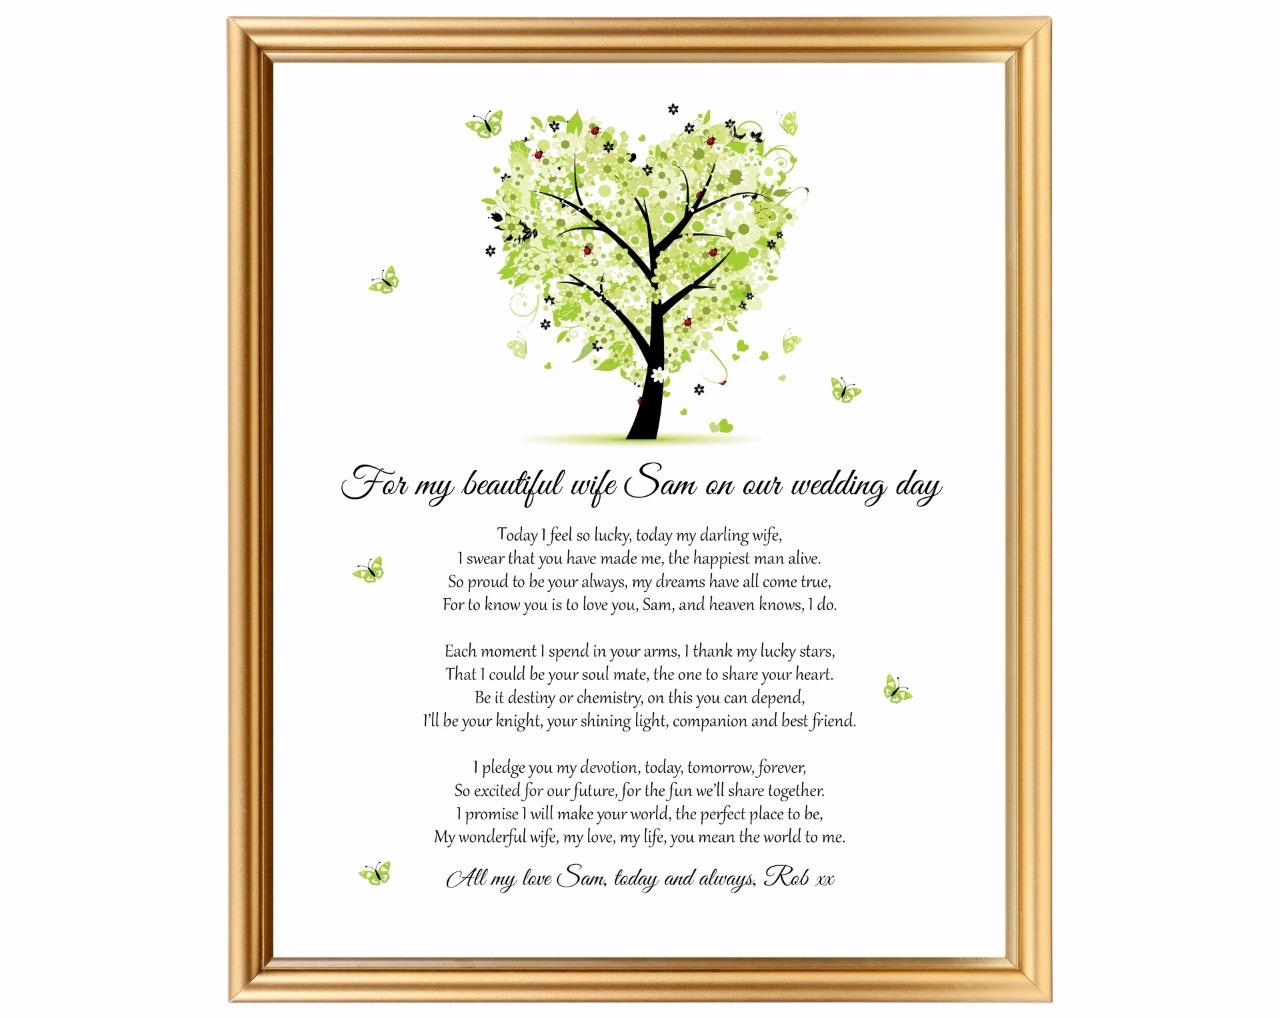 Wedding gift for wifeGroom to bride giftPersonalised keepsake ...